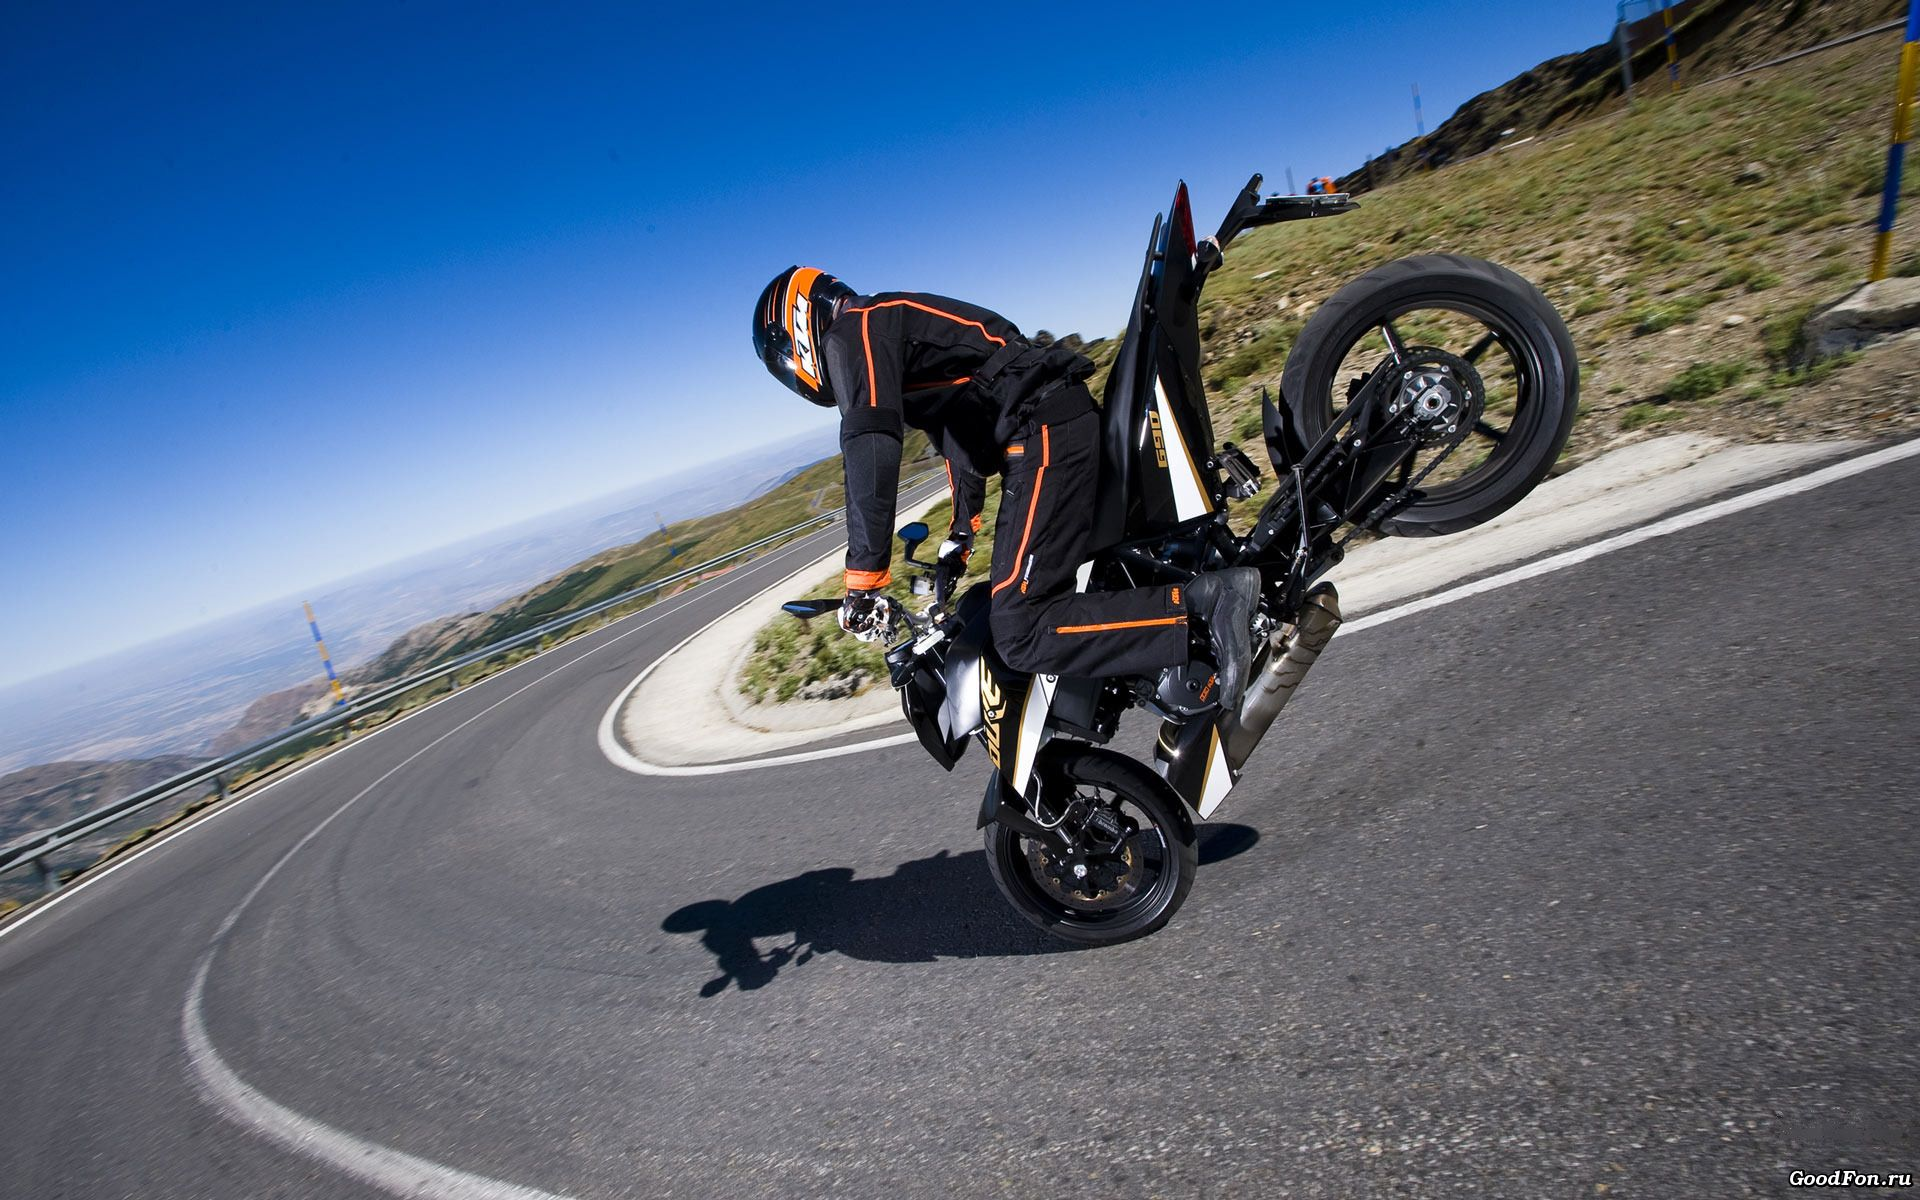 KTM Duke Bike Wallpaper HD For Desktop In High Quality 1920x1200